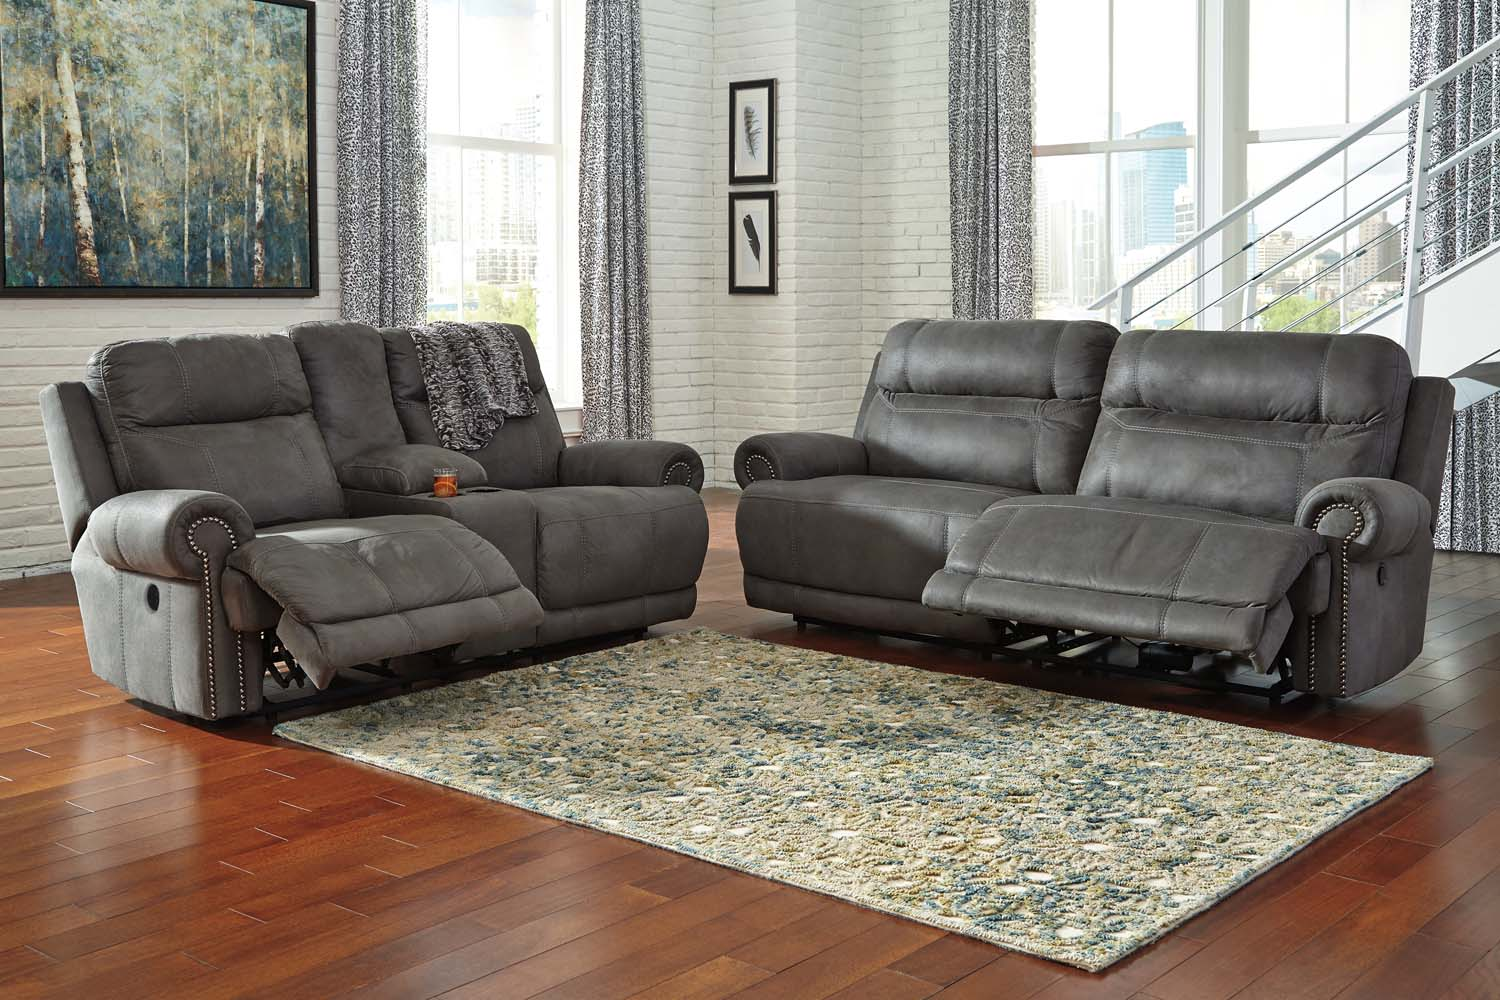 Hidden · Additional 2 Seat Reclining Sofa & 3840181 in by Ashley Furniture in Orange CA - 2 Seat Reclining Sofa islam-shia.org